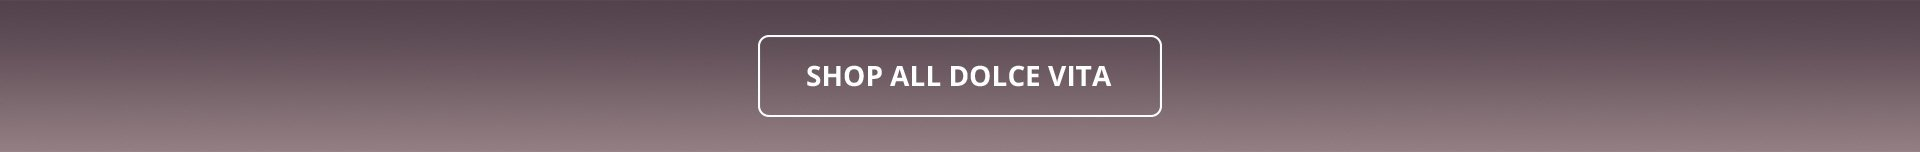 Shop All Dolce Vita